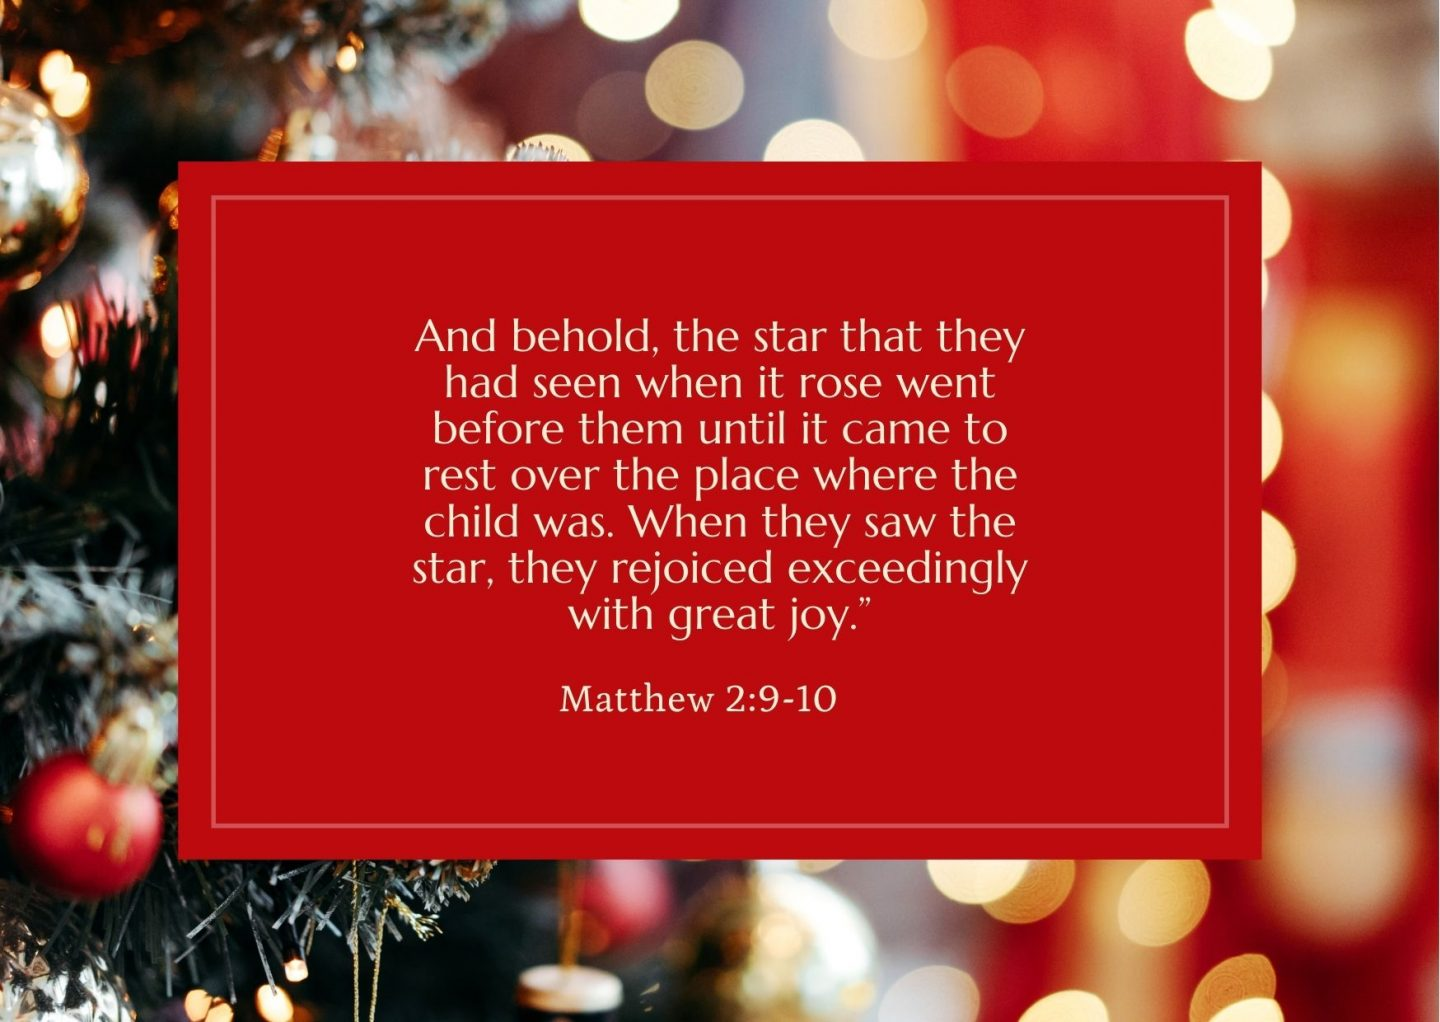 """And behold, the star that they had seen when it rose went before them until it came to rest over the place where the child was. When they saw the star, they rejoiced exceedingly with great joy."""" Matthew 2:9-10"""